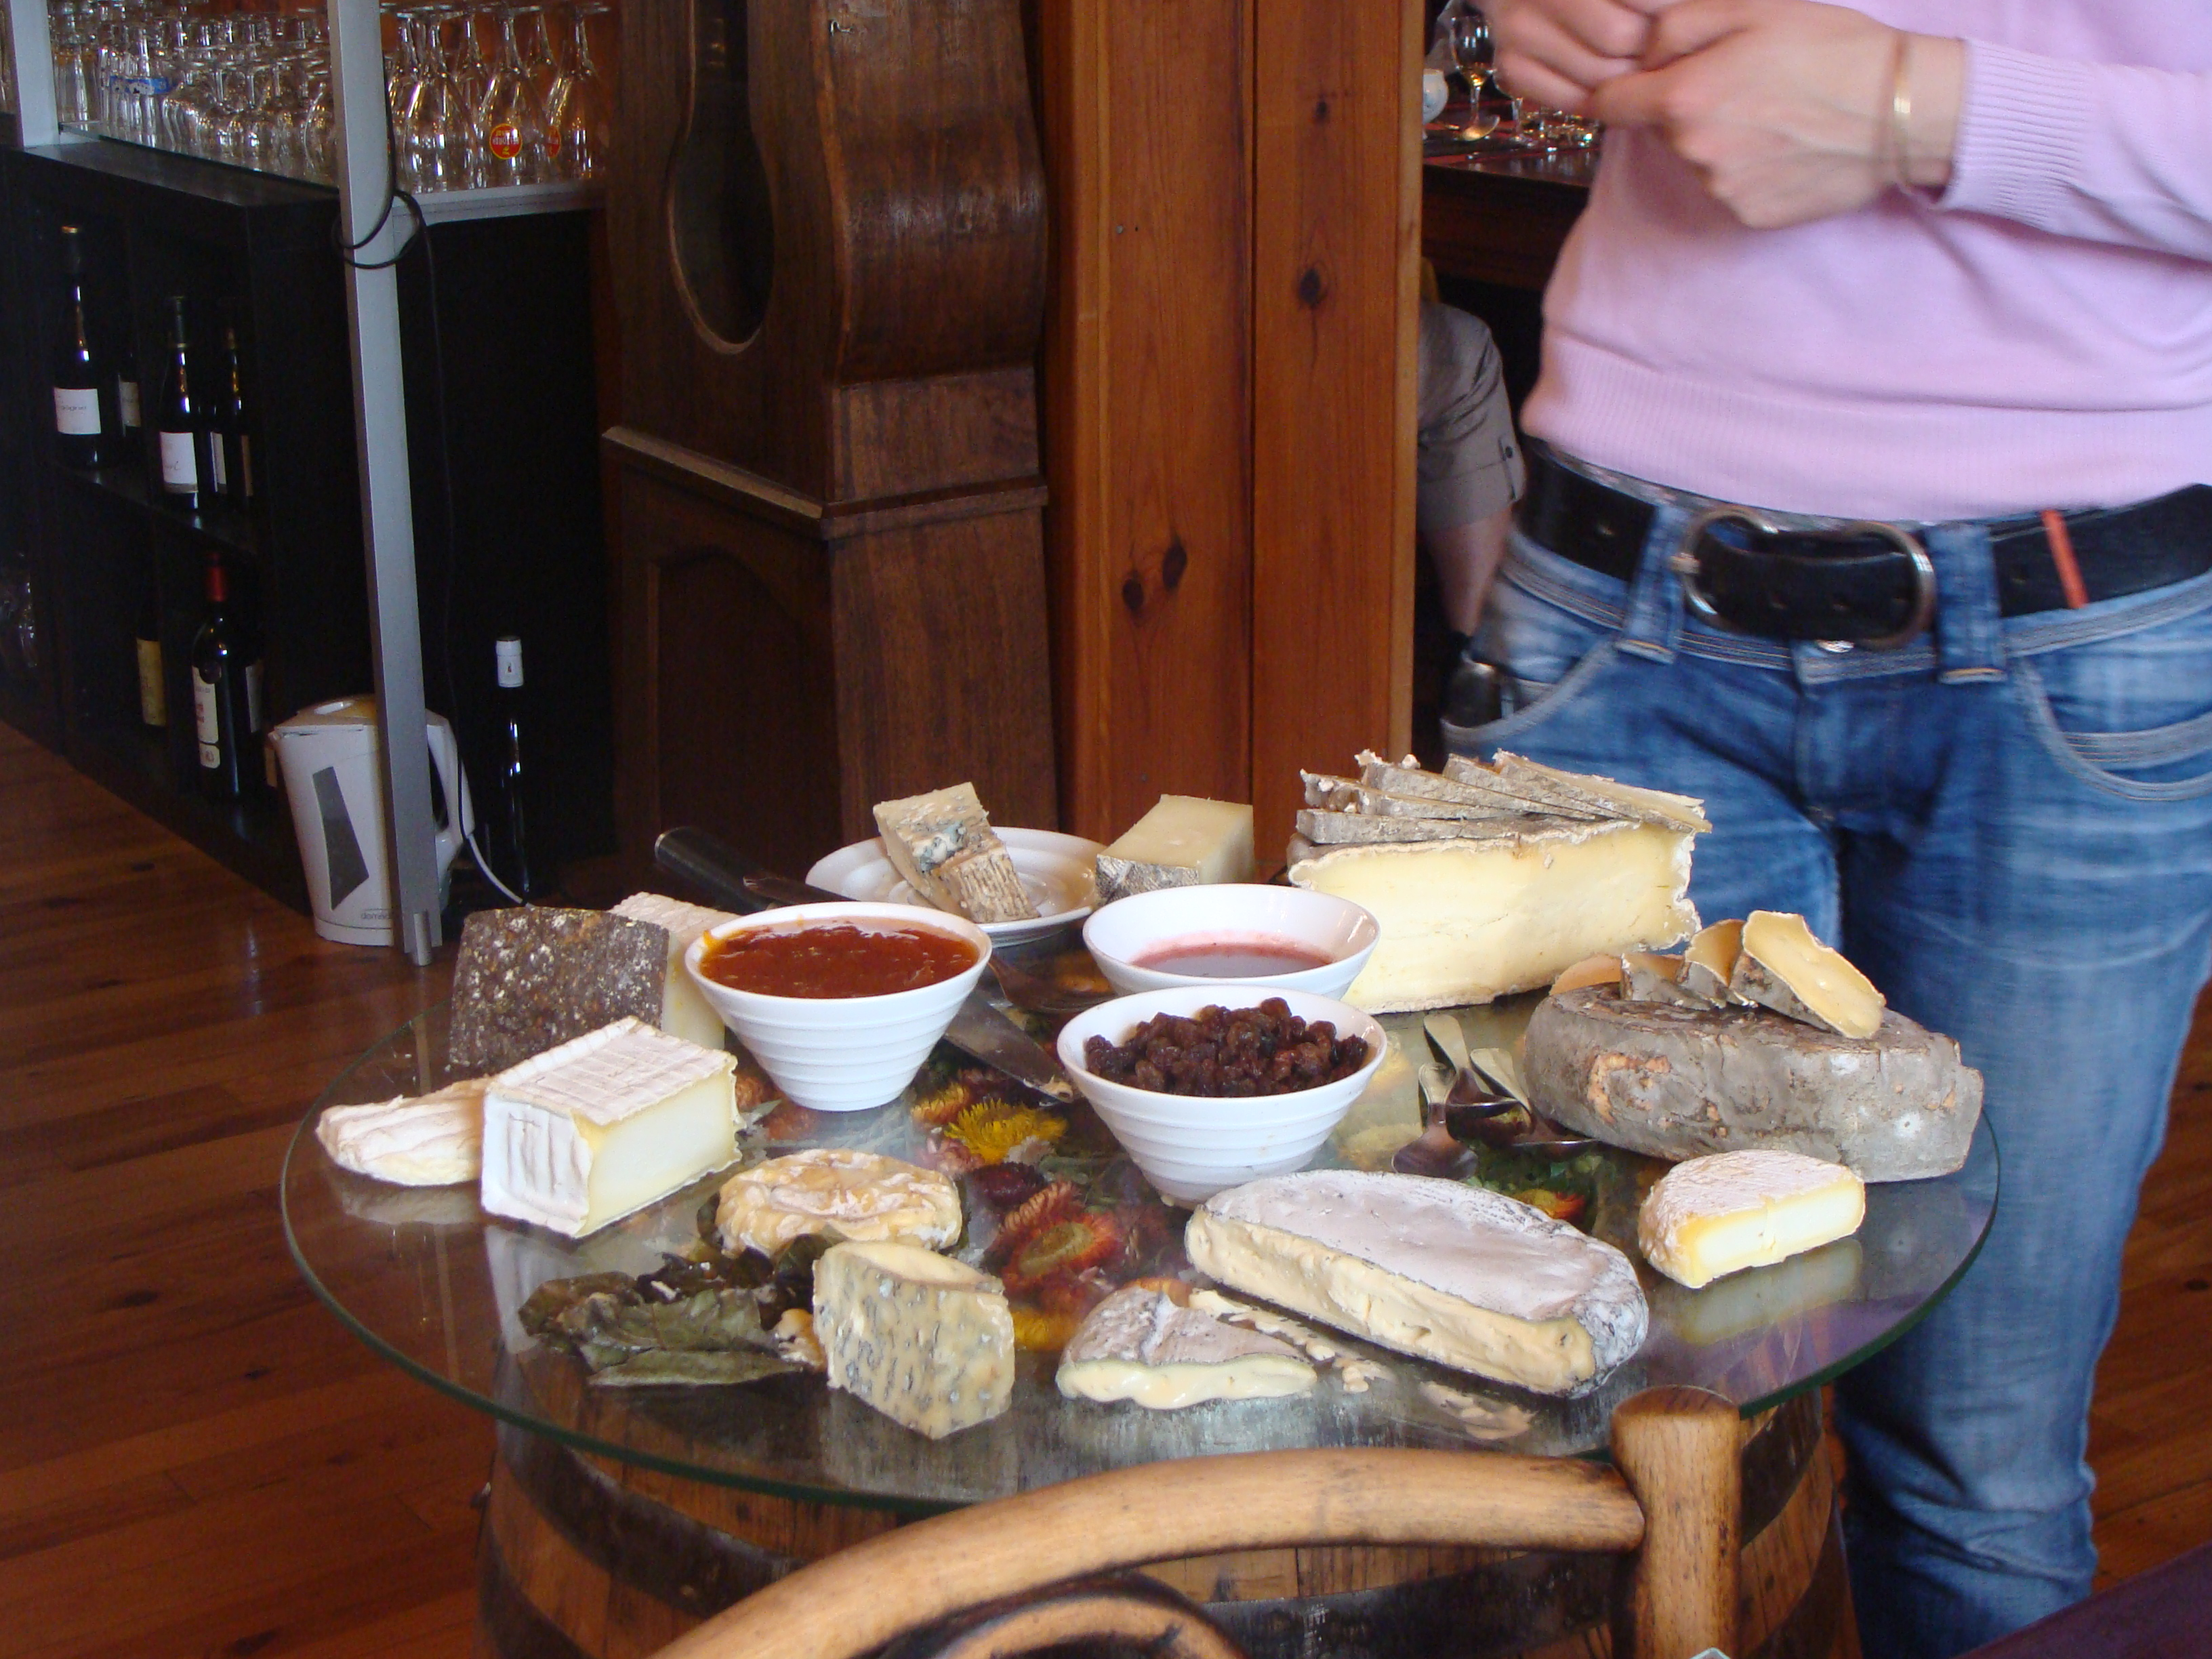 The Auvergne region is famous for it's cheese!